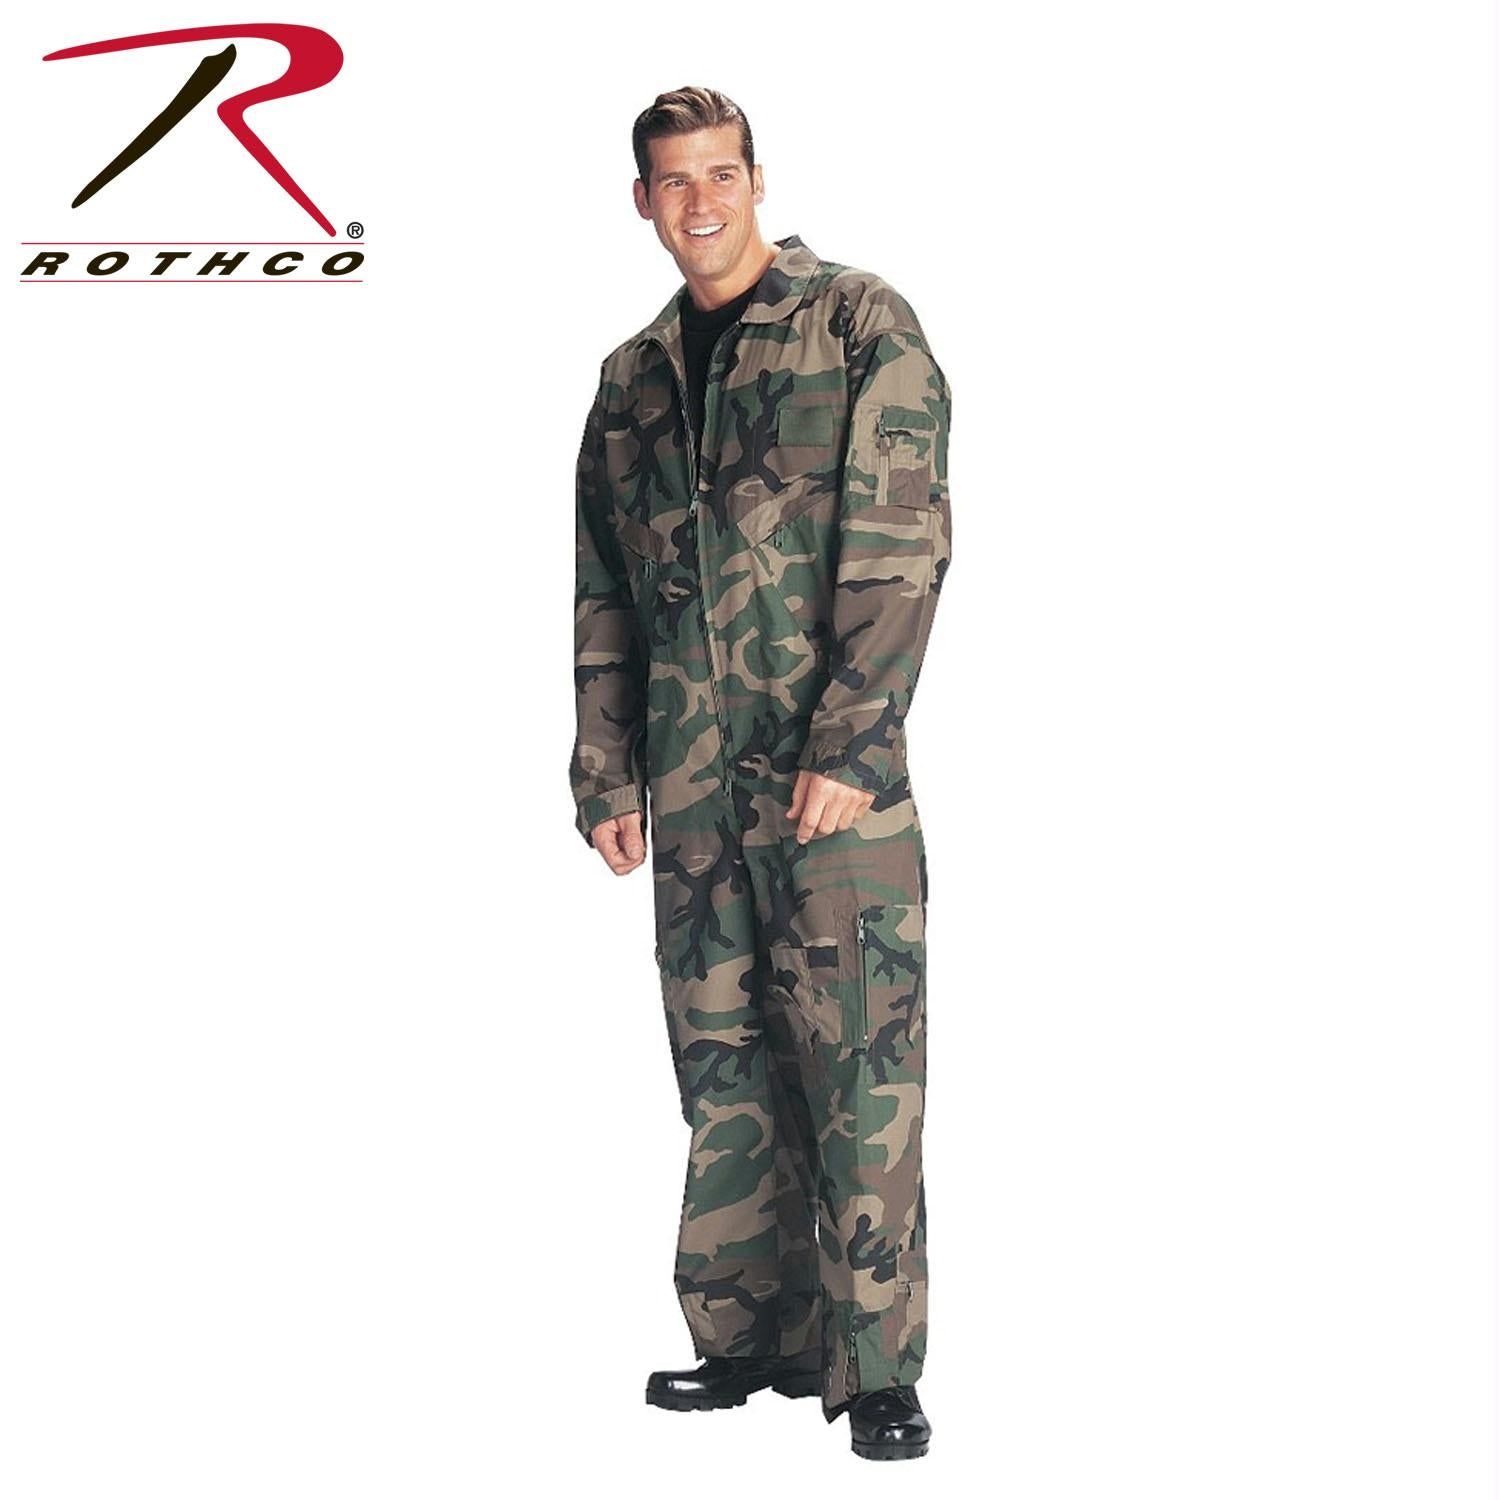 Rothco Flightsuits - Woodland Camo / M